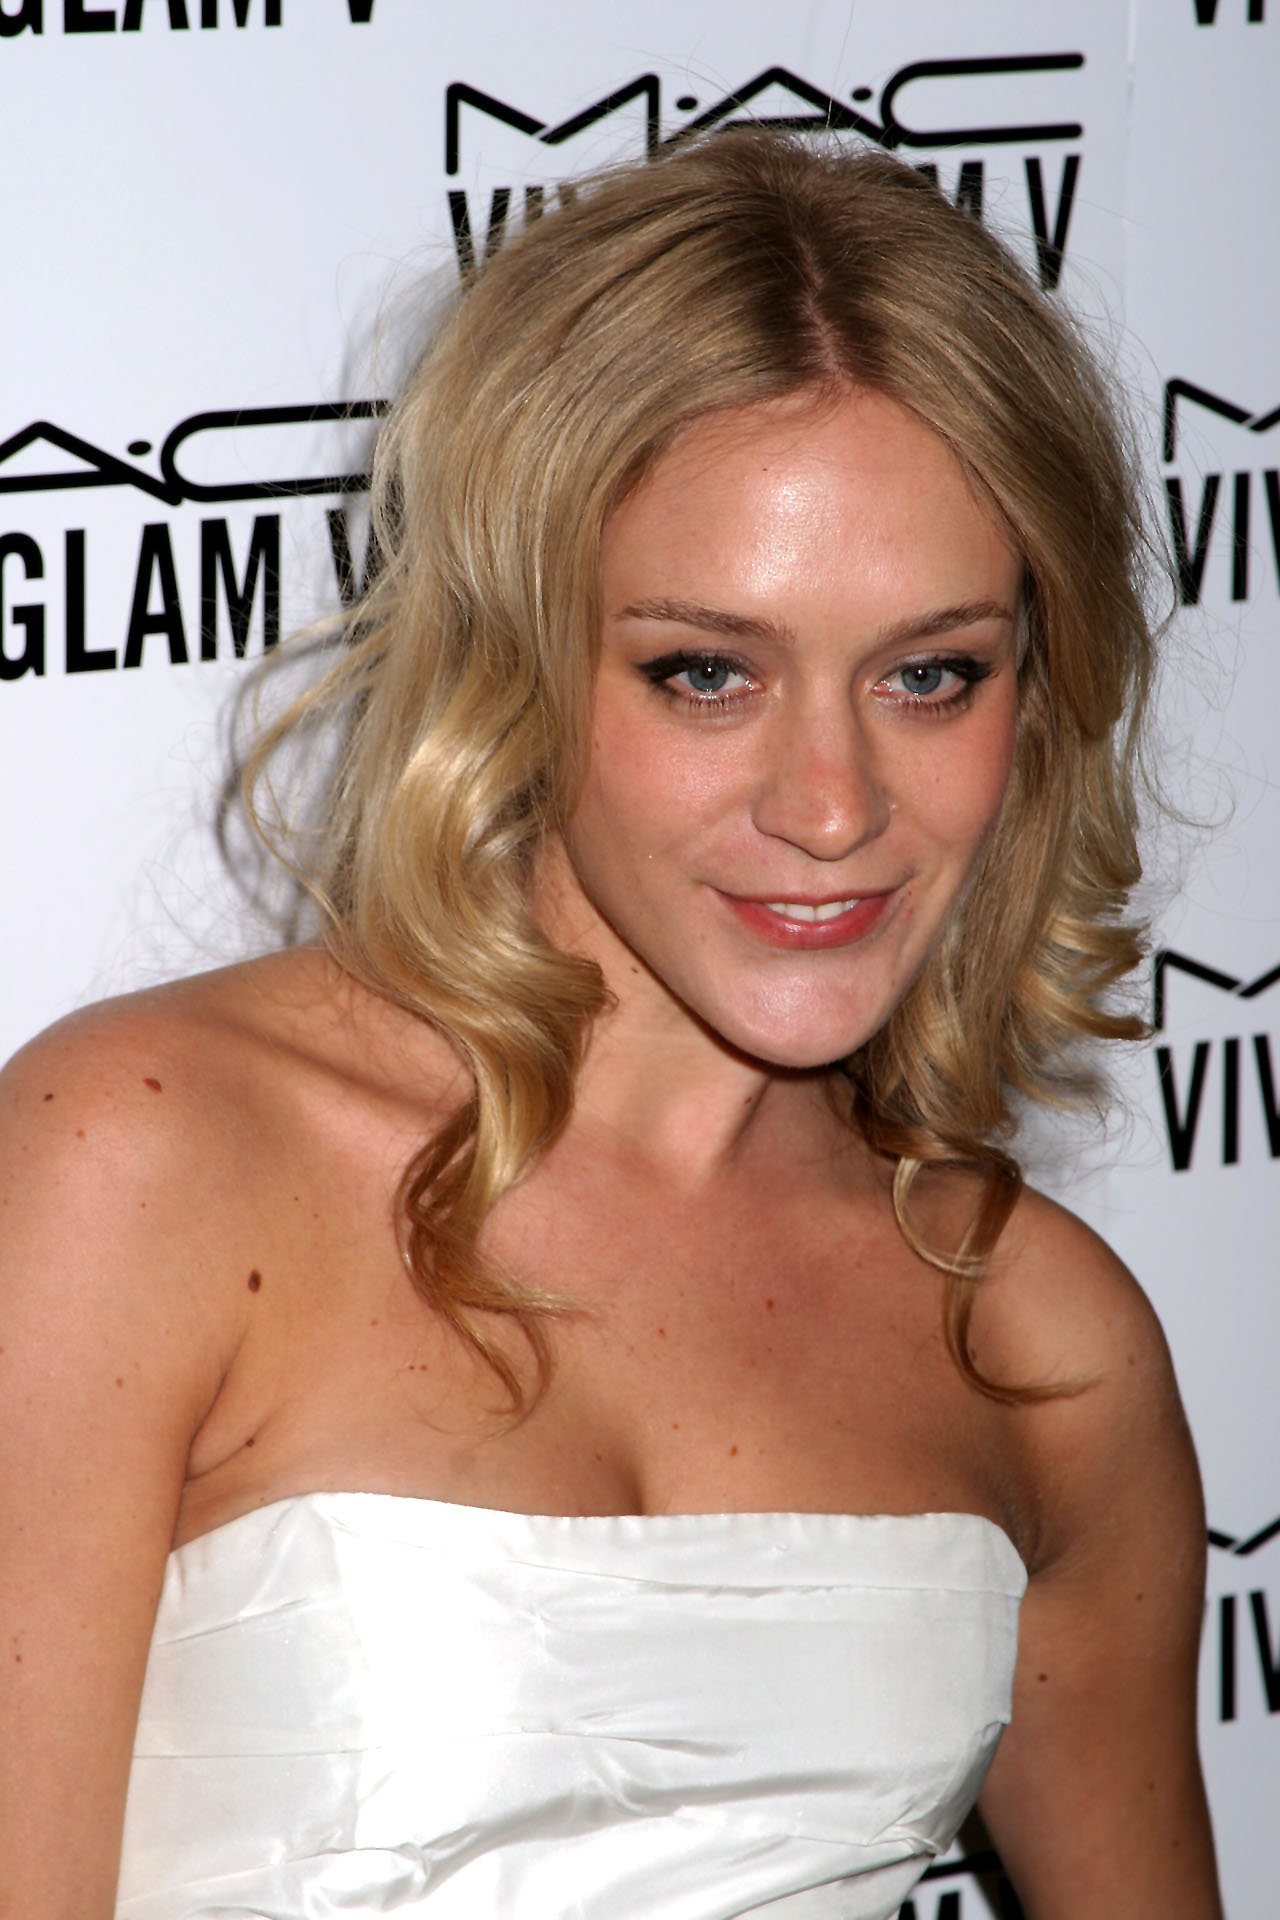 The 42-year old daughter of father H. David Sevigny and mother Janine Malinowski, 173 cm tall Chloë Sevigny in 2017 photo